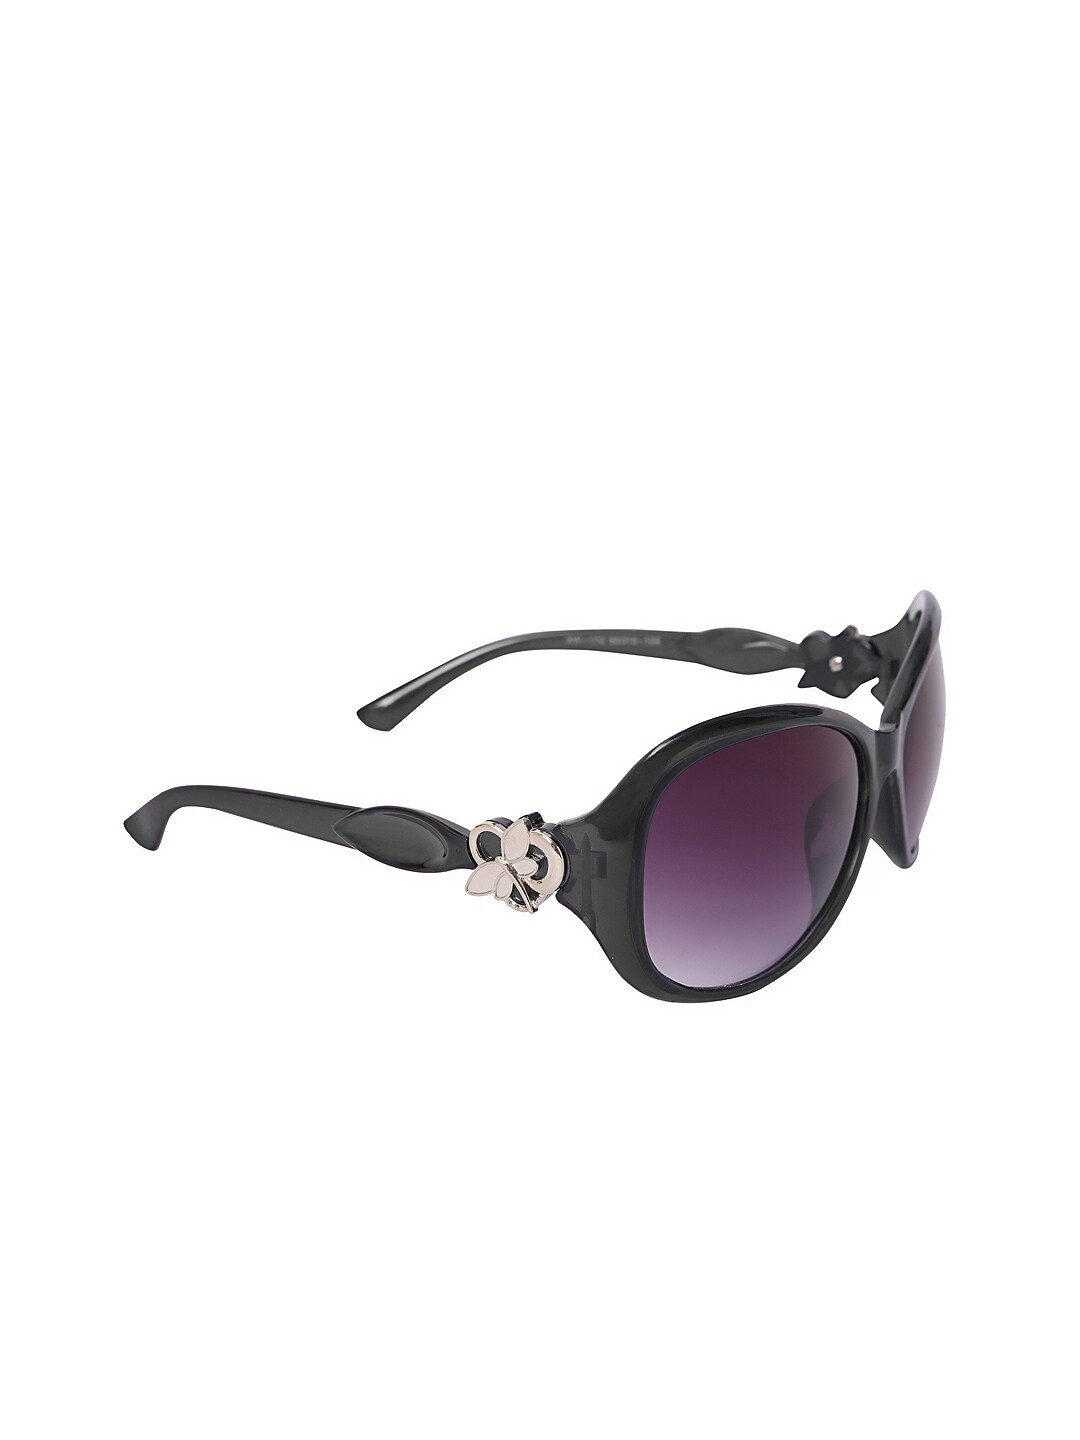 Camerii Women Gradient Sunglasses SCL32